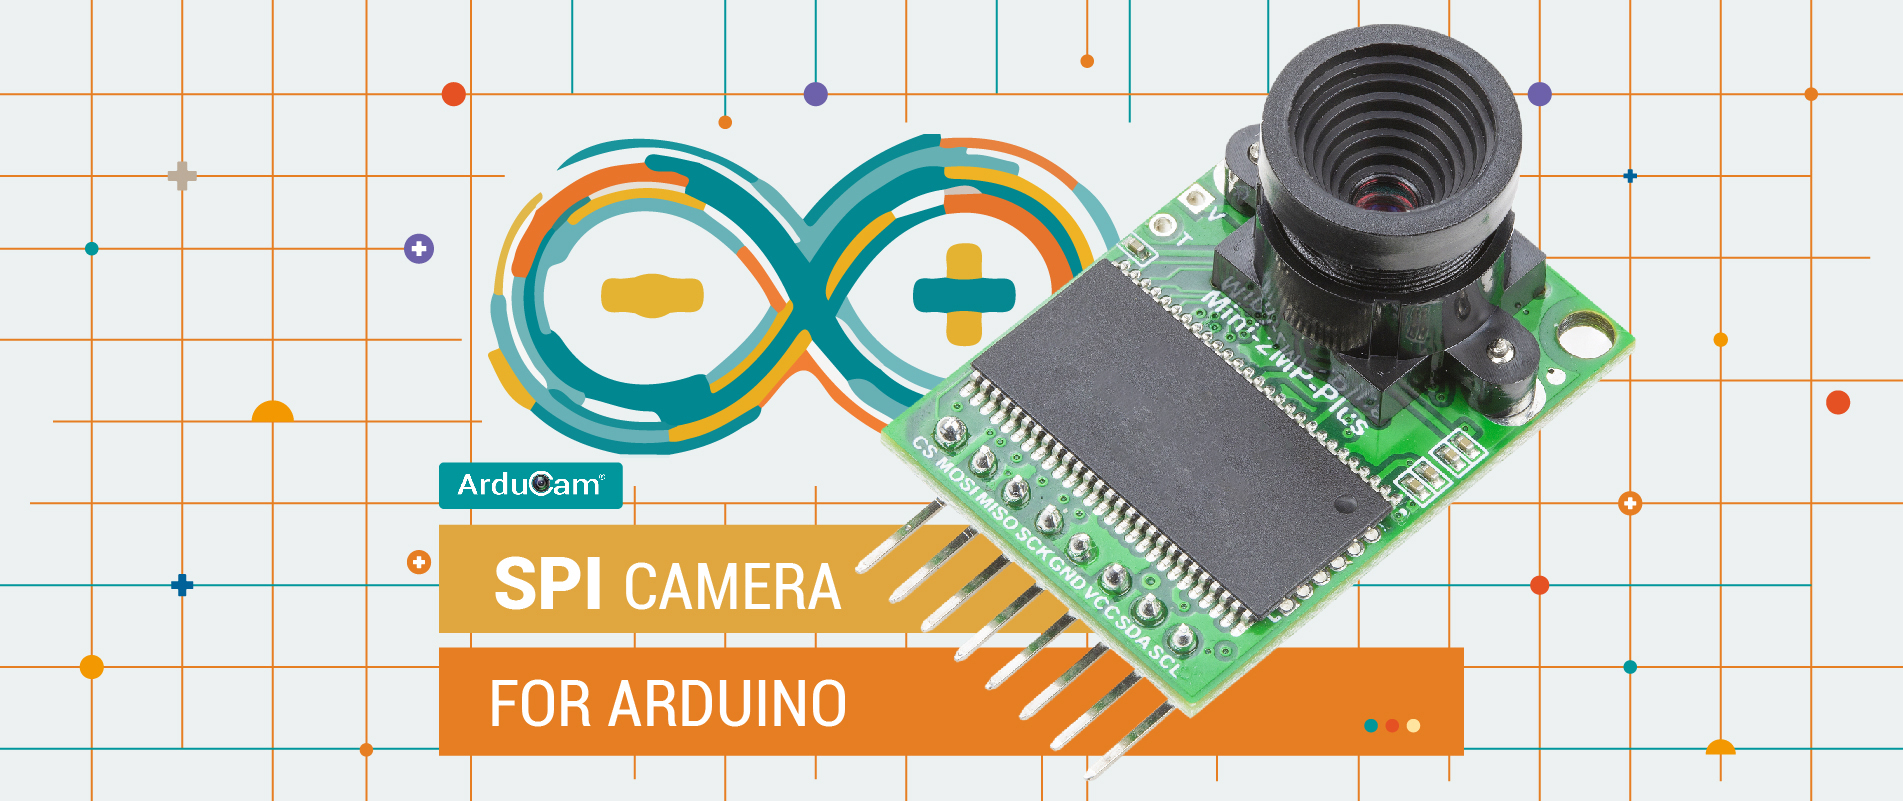 hight resolution of camera solutions for raspberry pi arduino and jetson nano camera modules and lenses